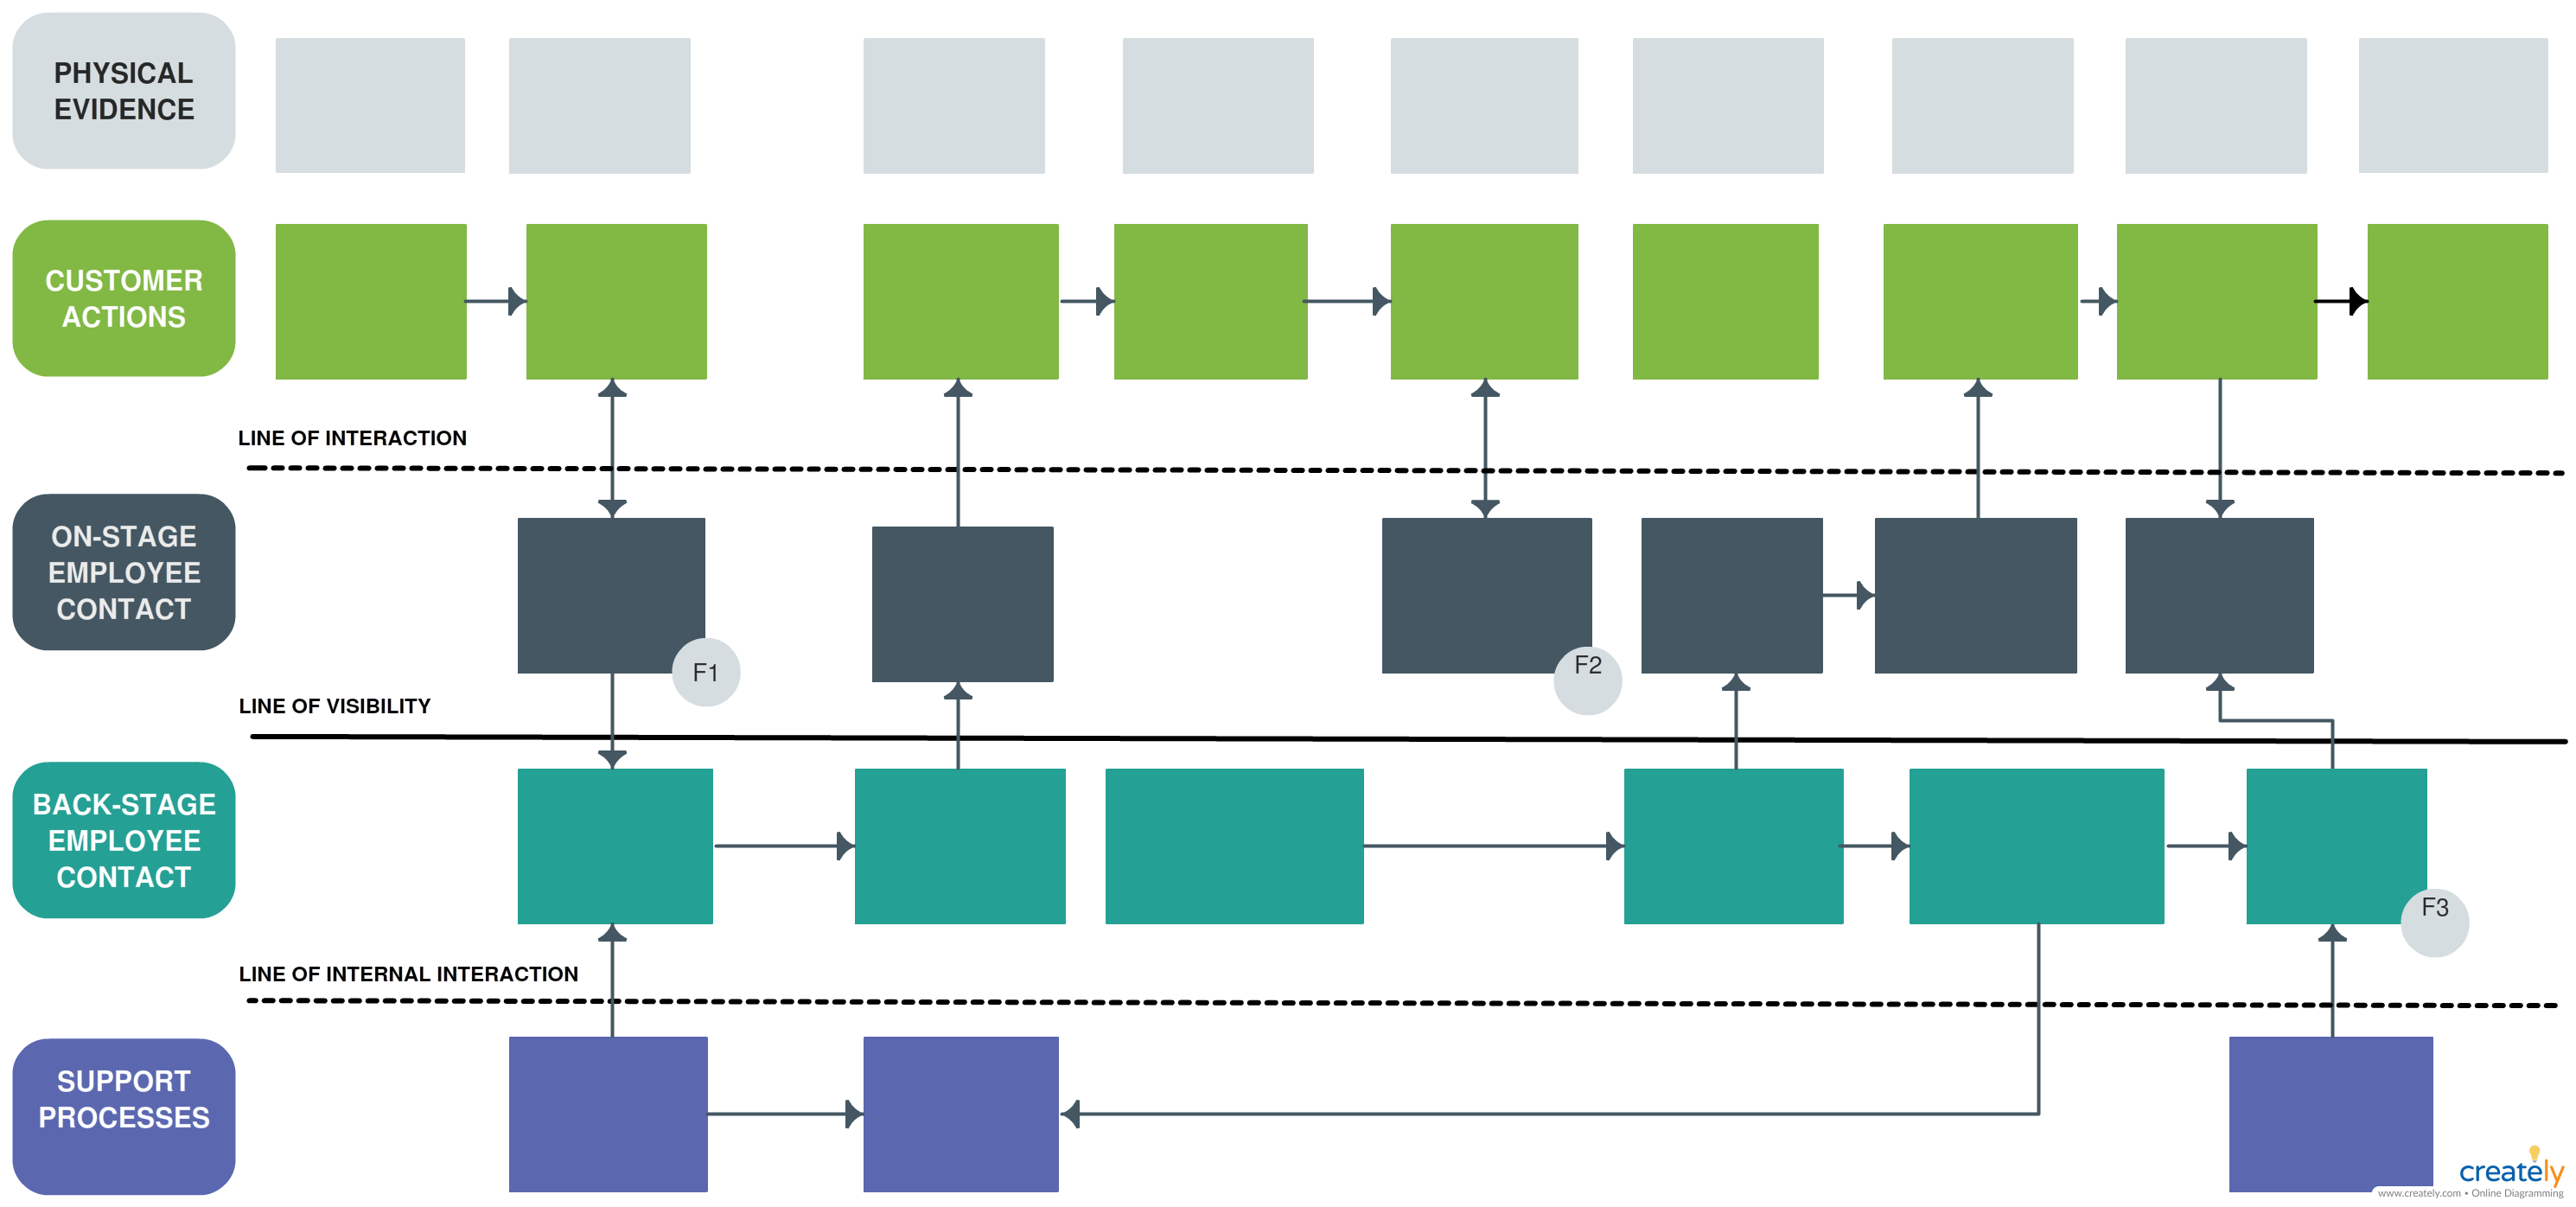 Service Blueprint Template Editable Service Blueprint Template To Visualize The Relationships Between Different Service Blueprint Blueprints Journey Mapping